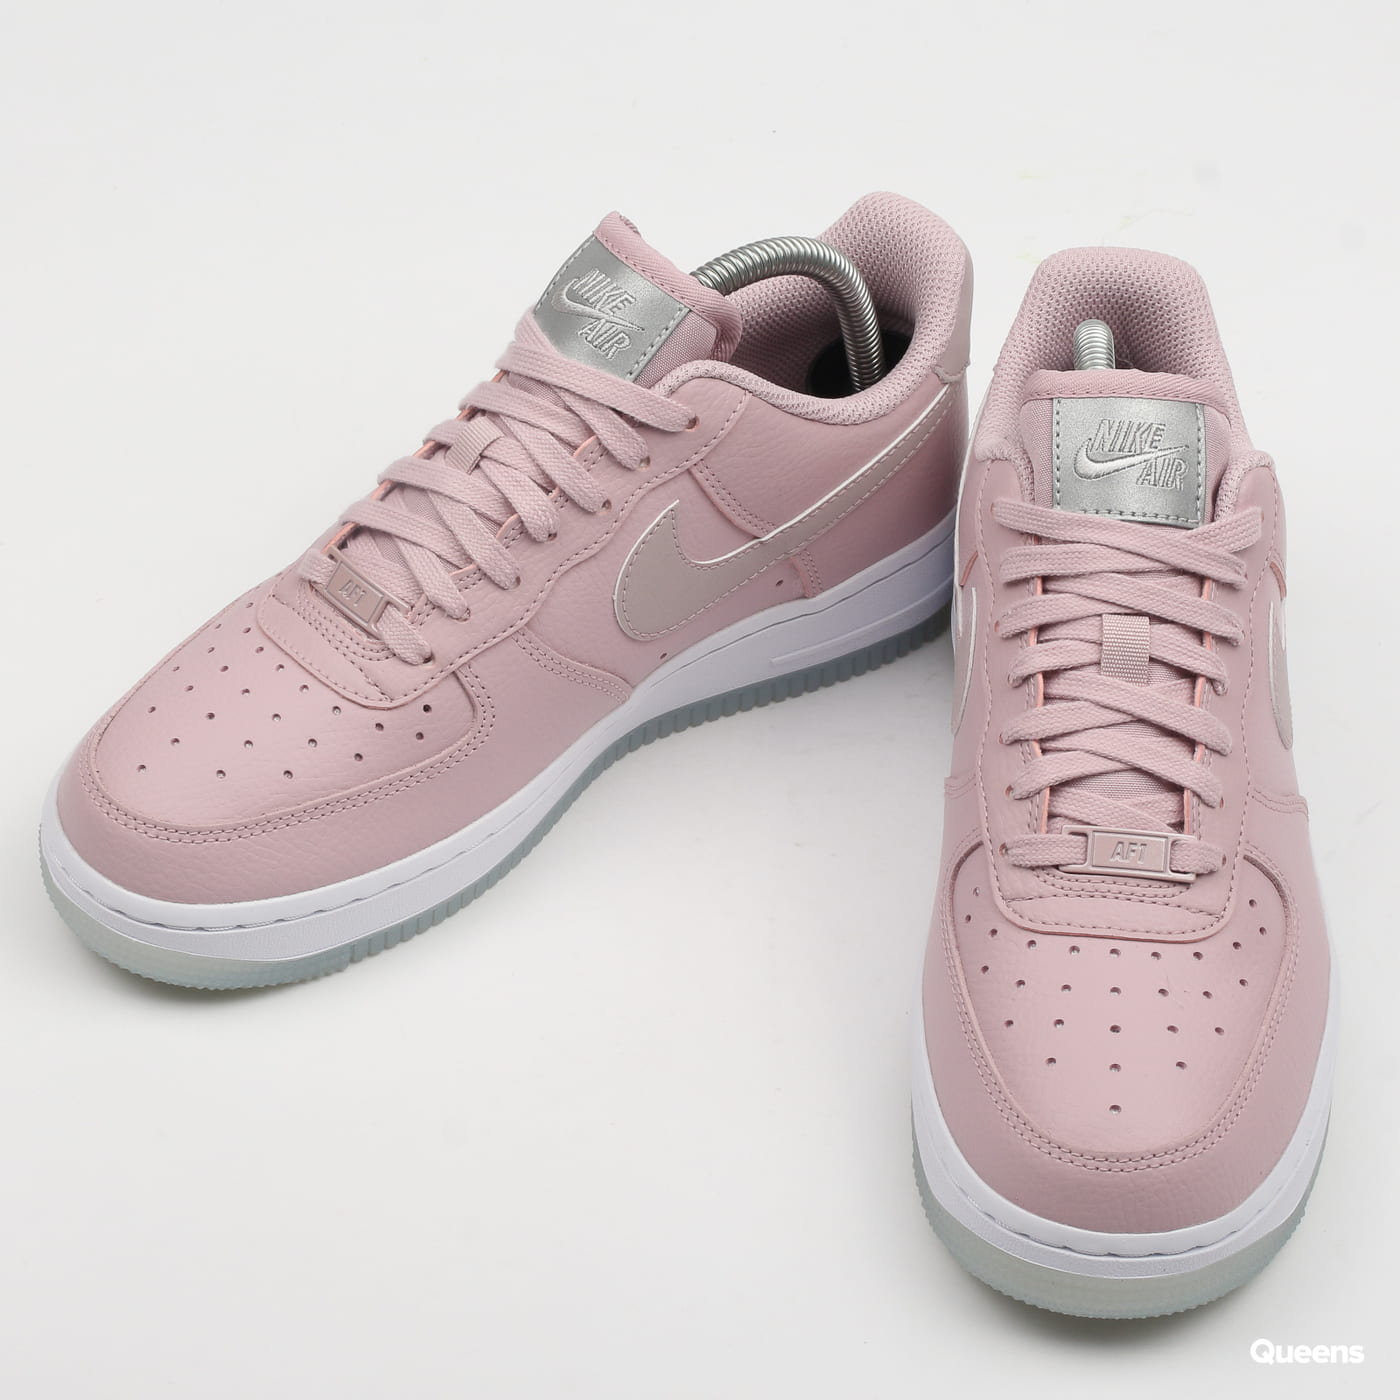 brand new bbbdc 0df95 Zoom in Zoom in Zoom in Zoom in Zoom in. Nike WMNS Air Force 1  07 Ess ...